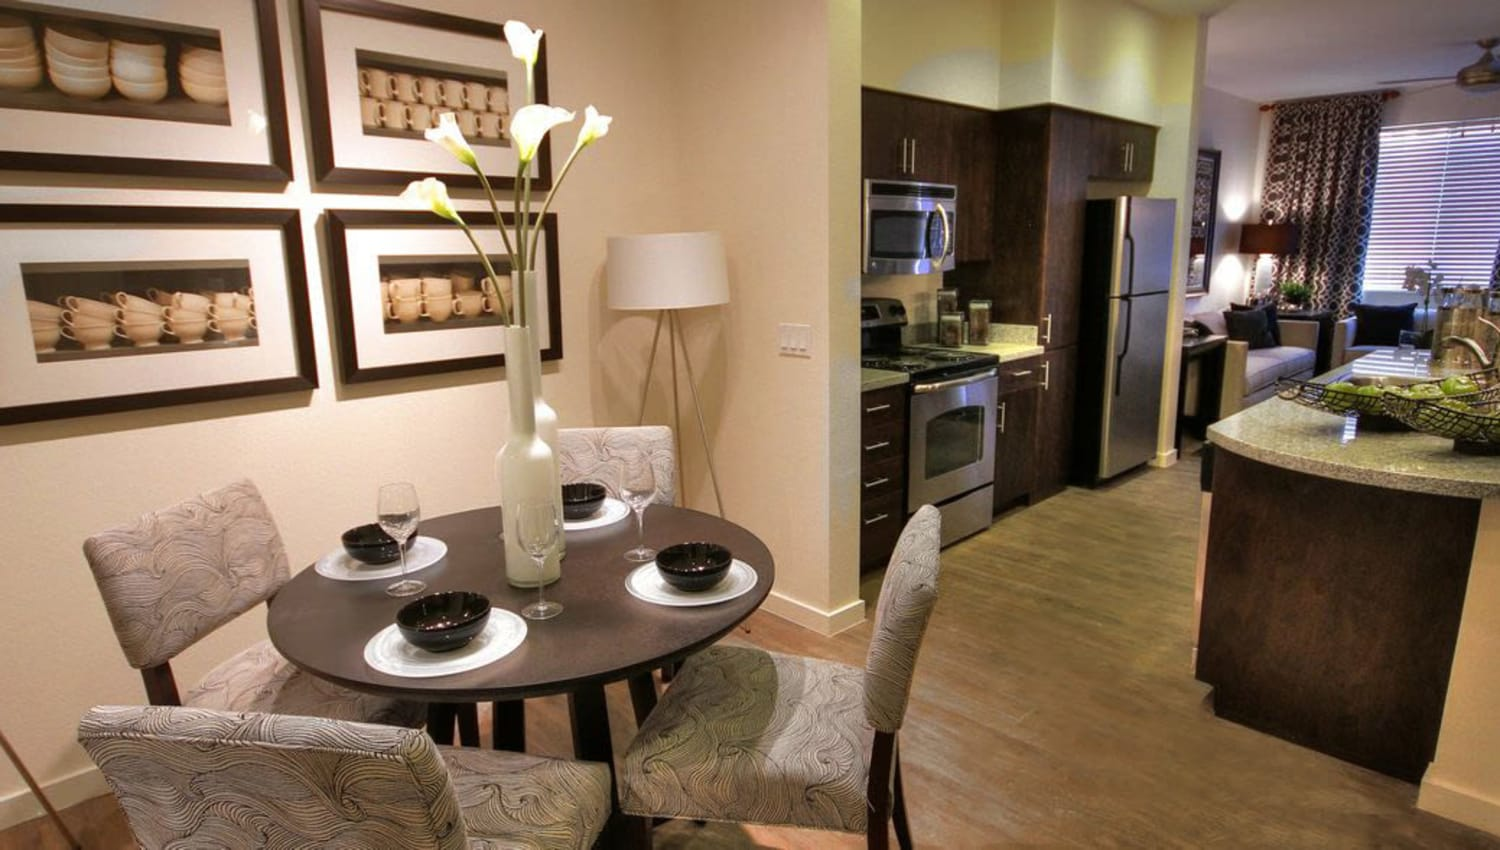 View of the kitchen from the dining area of a model home at Redstone at SanTan Village in Gilbert, Arizona